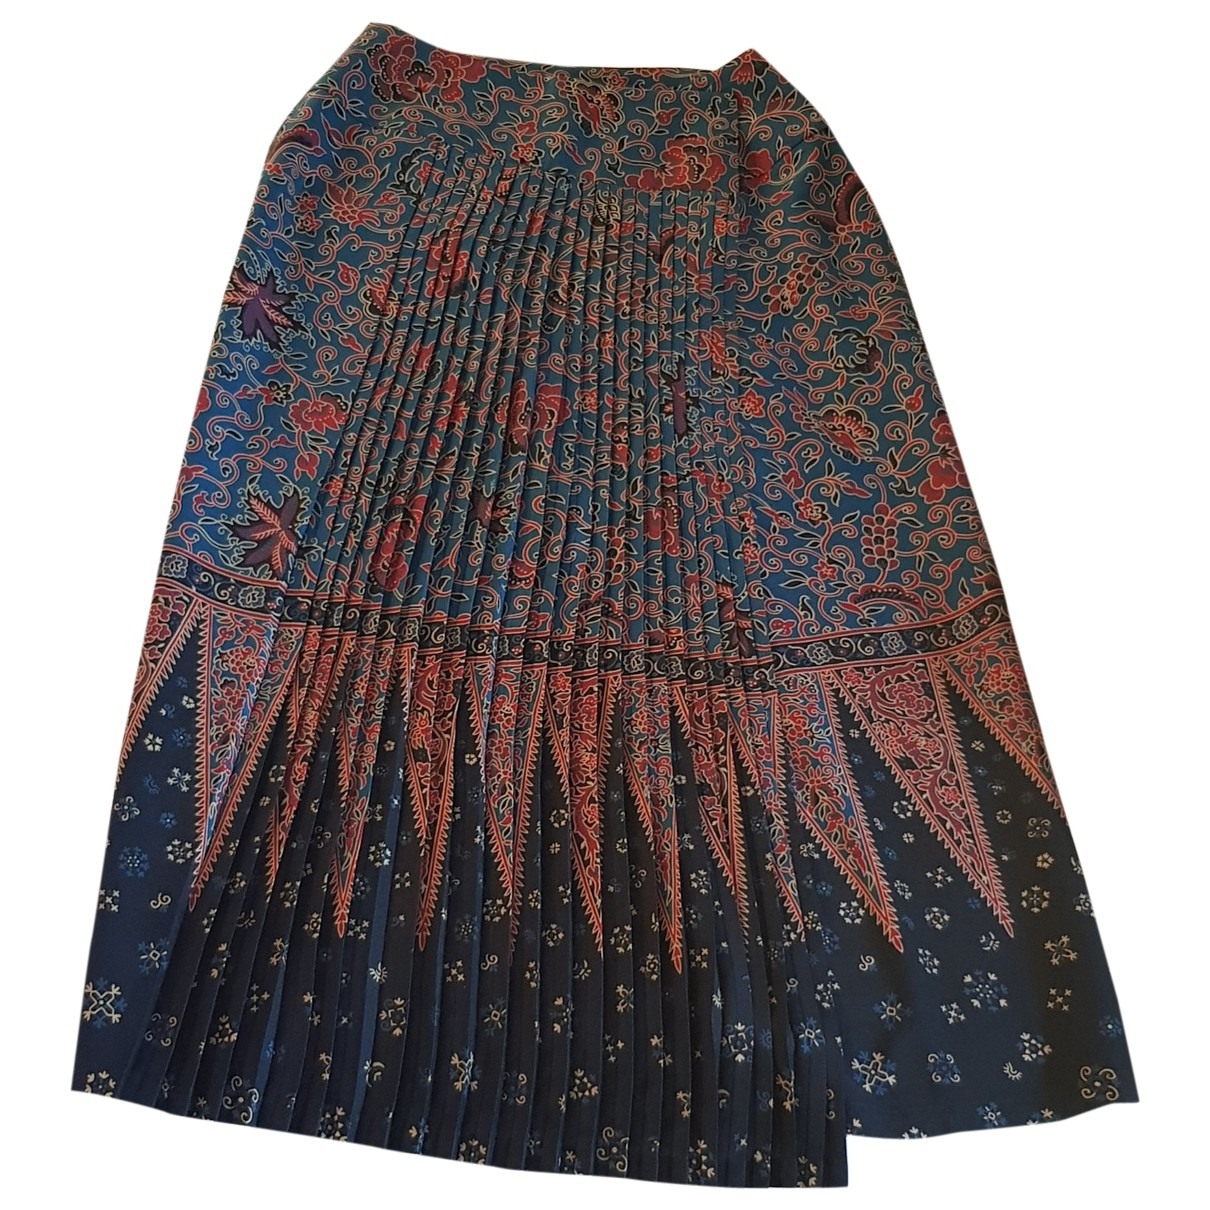 Kenzo \N Multicolour Wool skirt for Women 40 FR